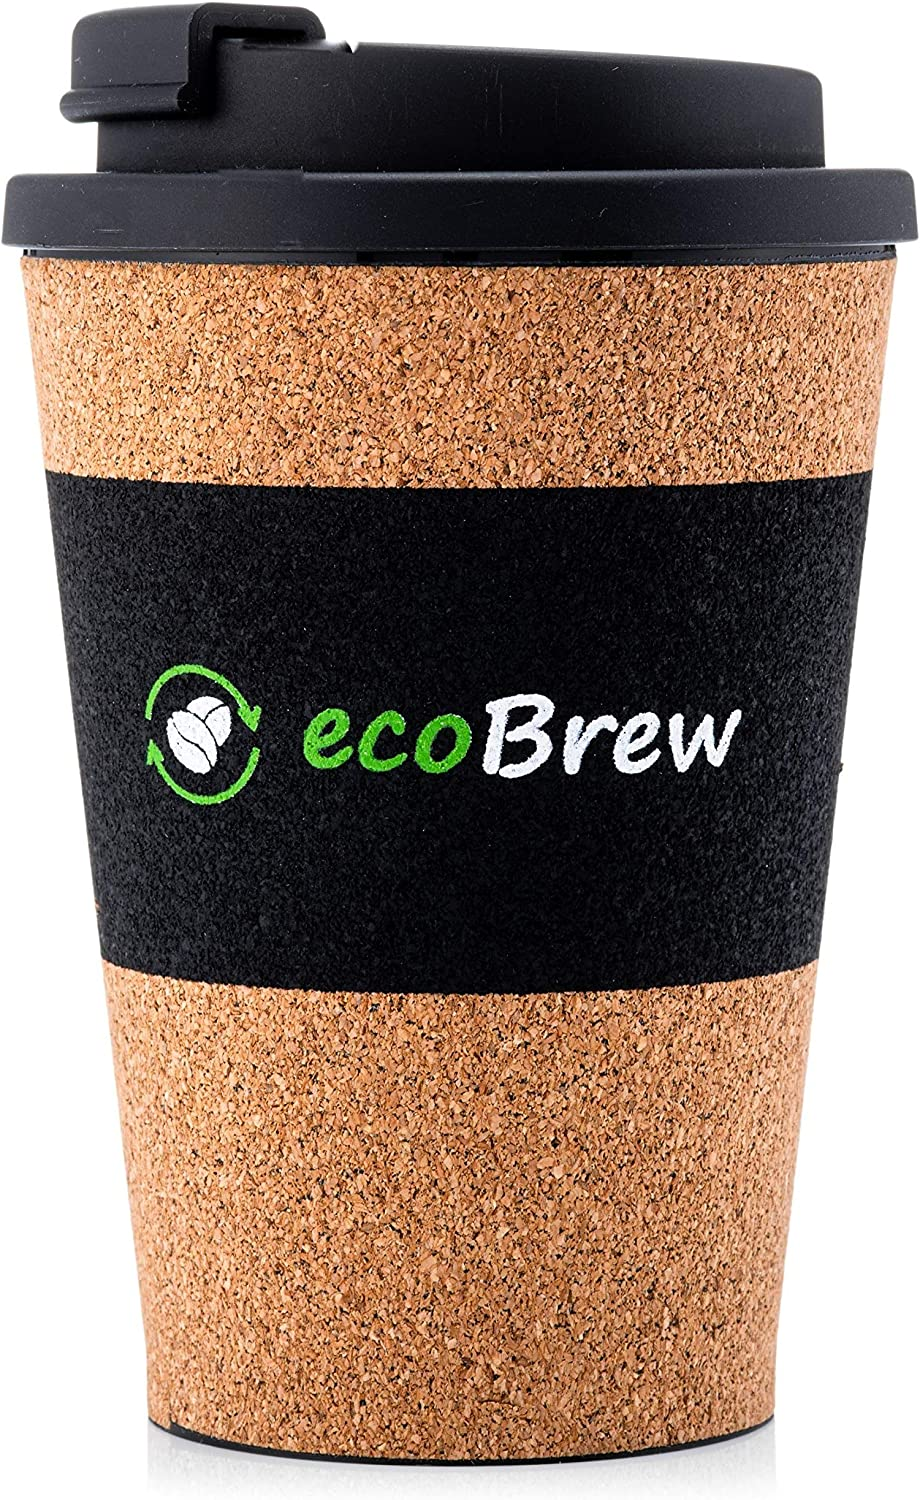 ecoBrew Bio Reusable Coffee Cup | Leakproof Screw On Lid | Biodegradable, Portable & Dishwasher Safe | Made with Cork, Eco Friendly Travel Mug | Ideal